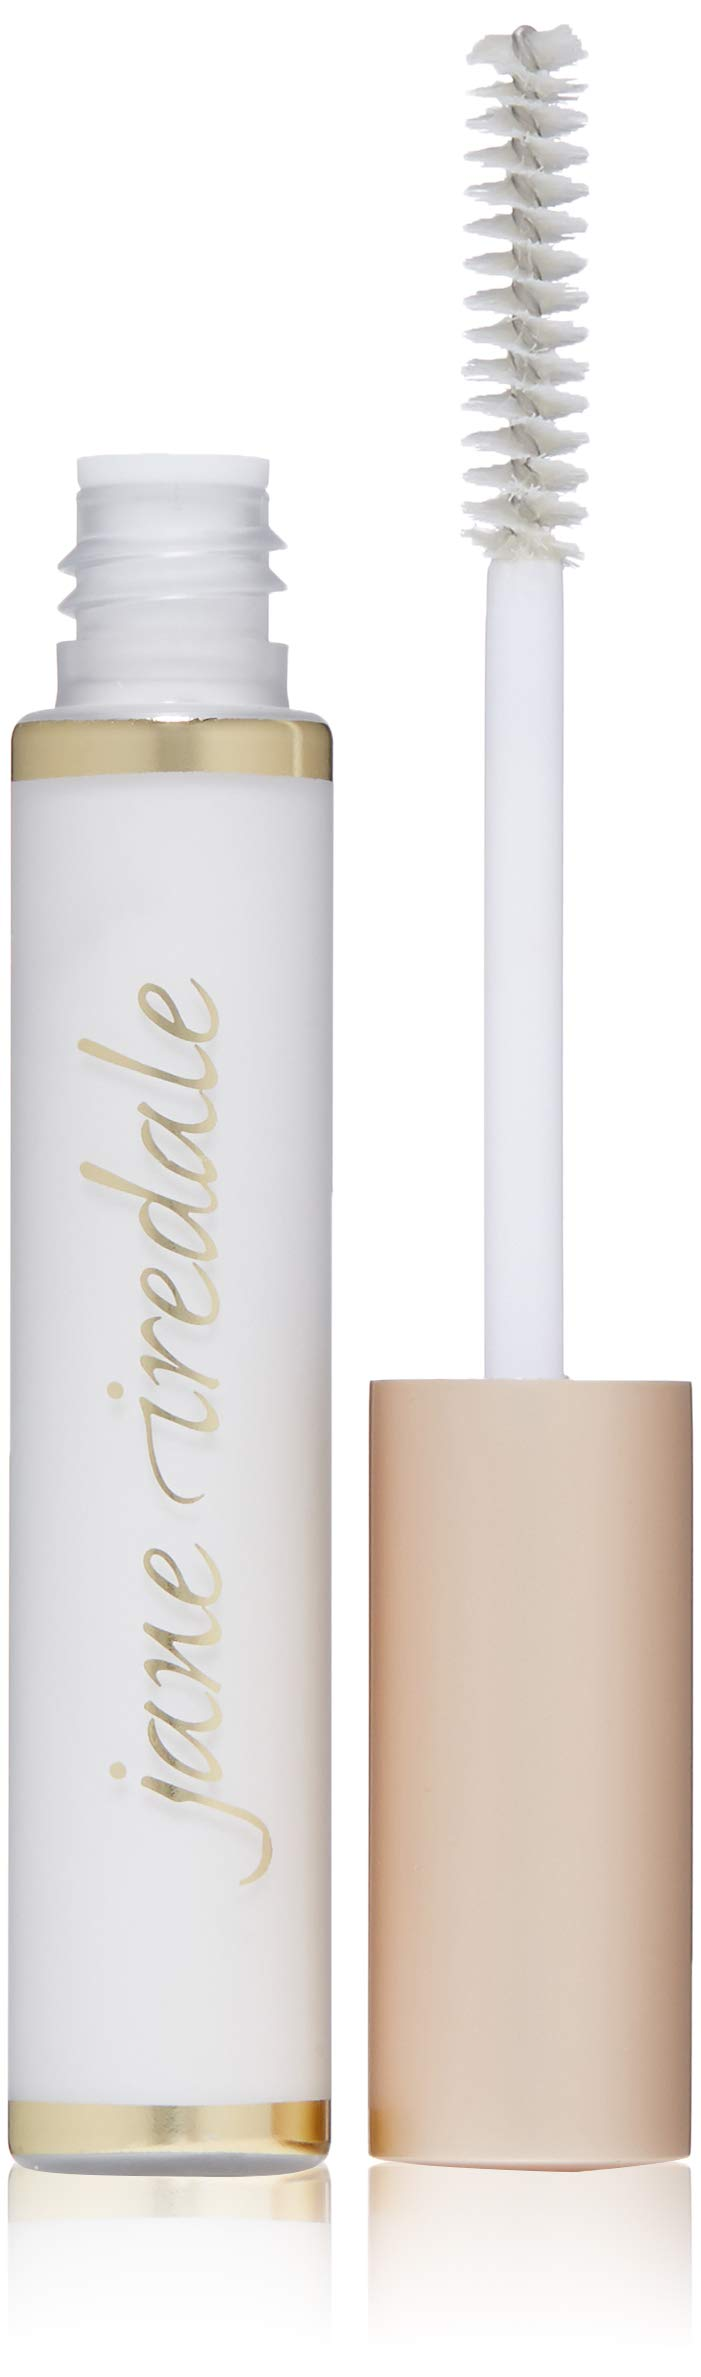 jane iredale PureLash Lash Extender and Conditioner, 0.30 oz. by jane iredale